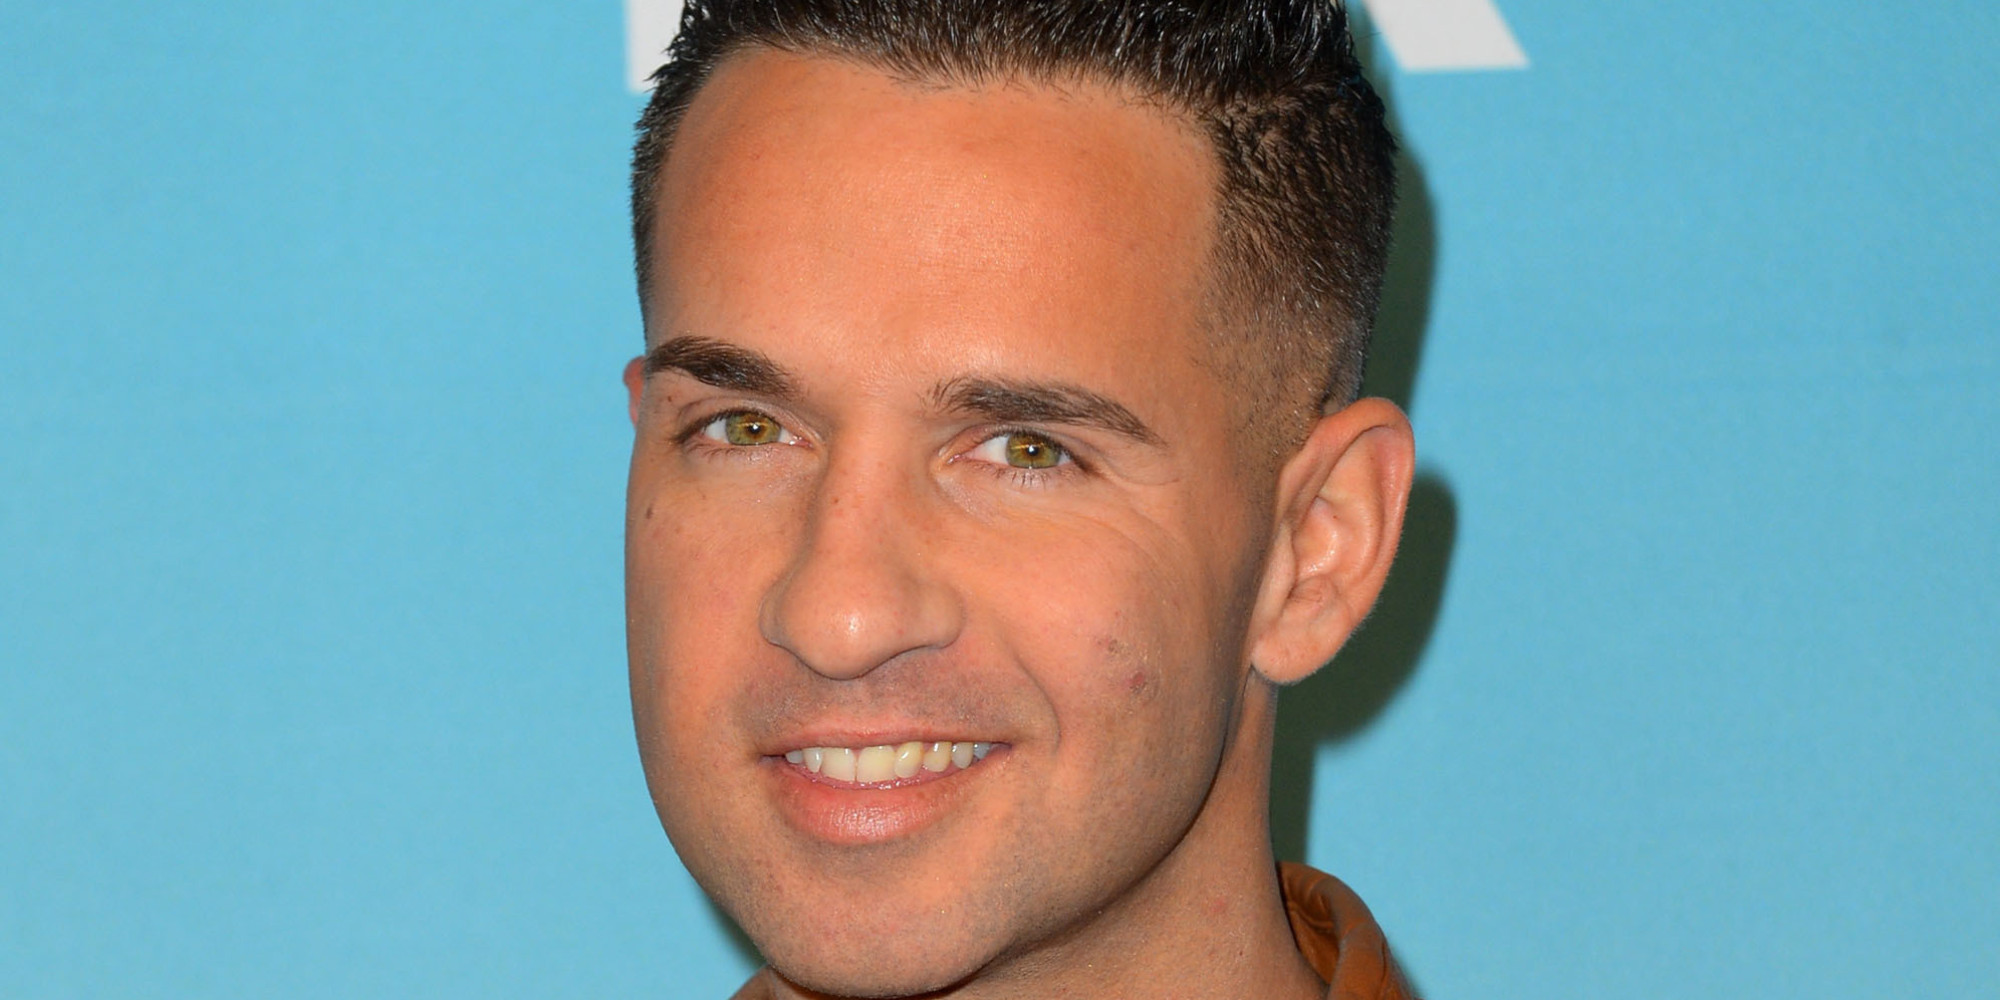 As expected reality TV star Mike The Situation Sorrentino and his brother Marc Sorrentino pleaded guilty today to violating federal tax laws